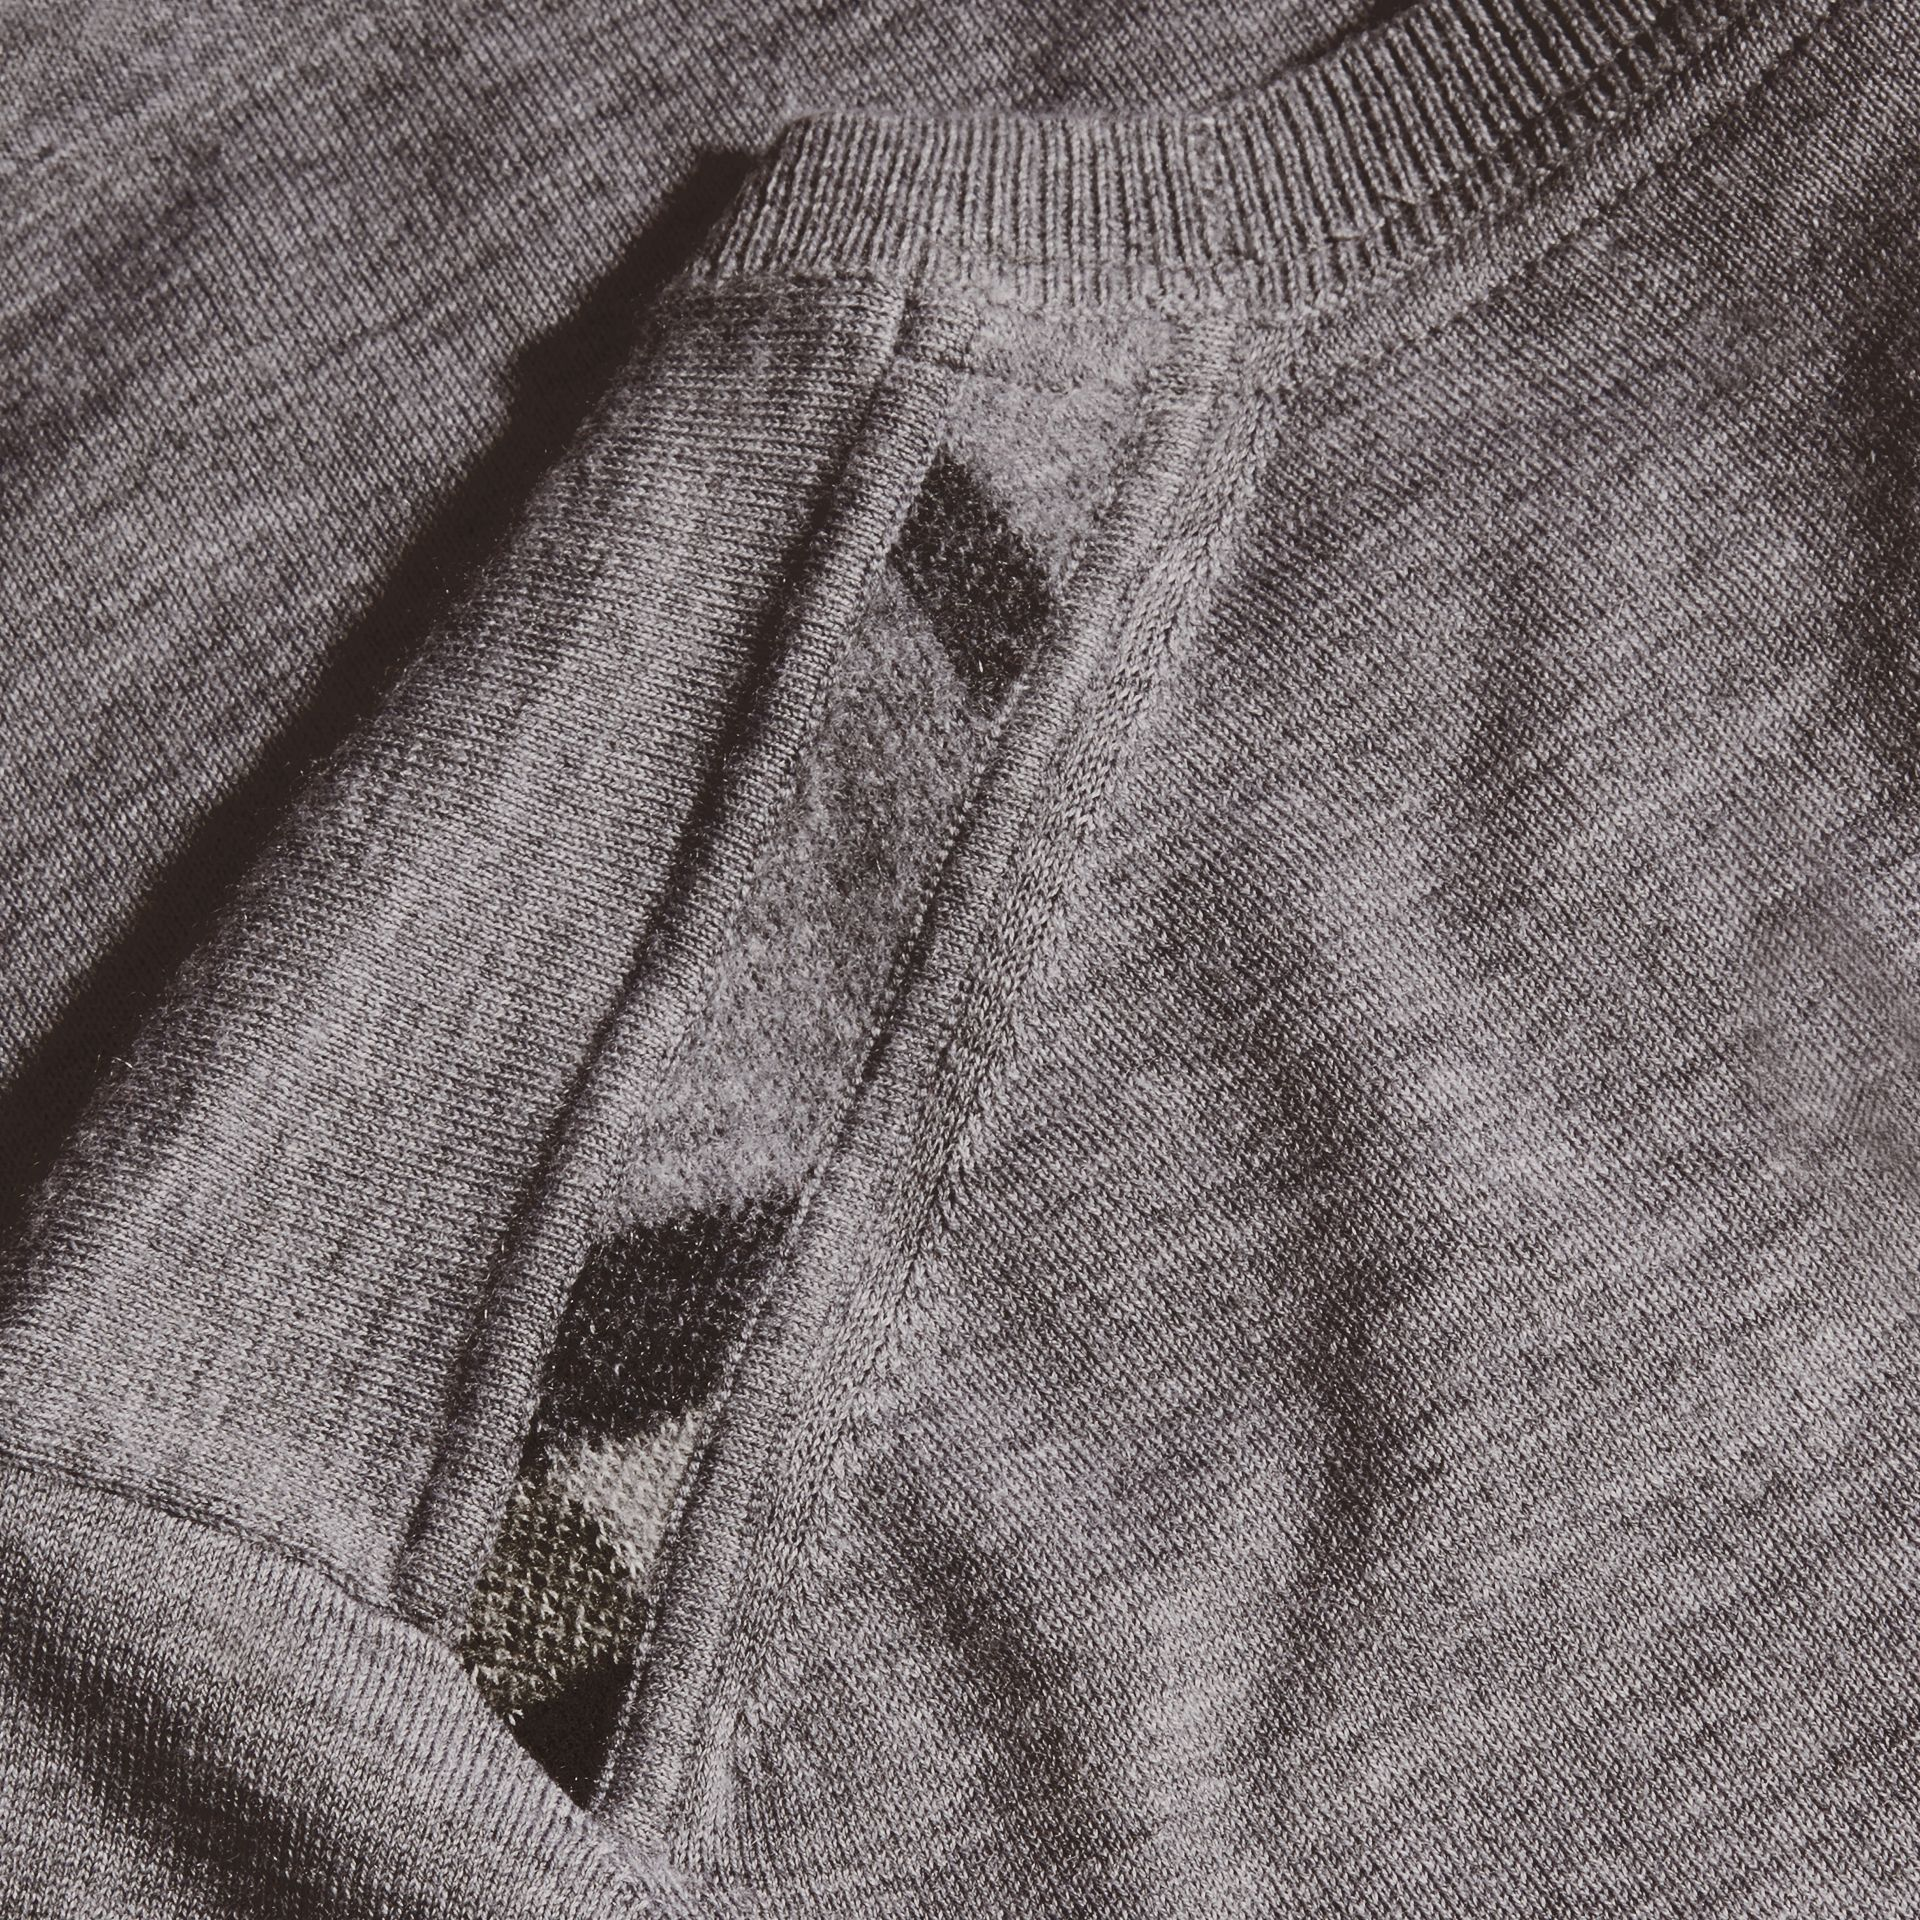 Lightweight Crew Neck Cashmere Sweater with Check Trim Pale Grey Melange - gallery image 2